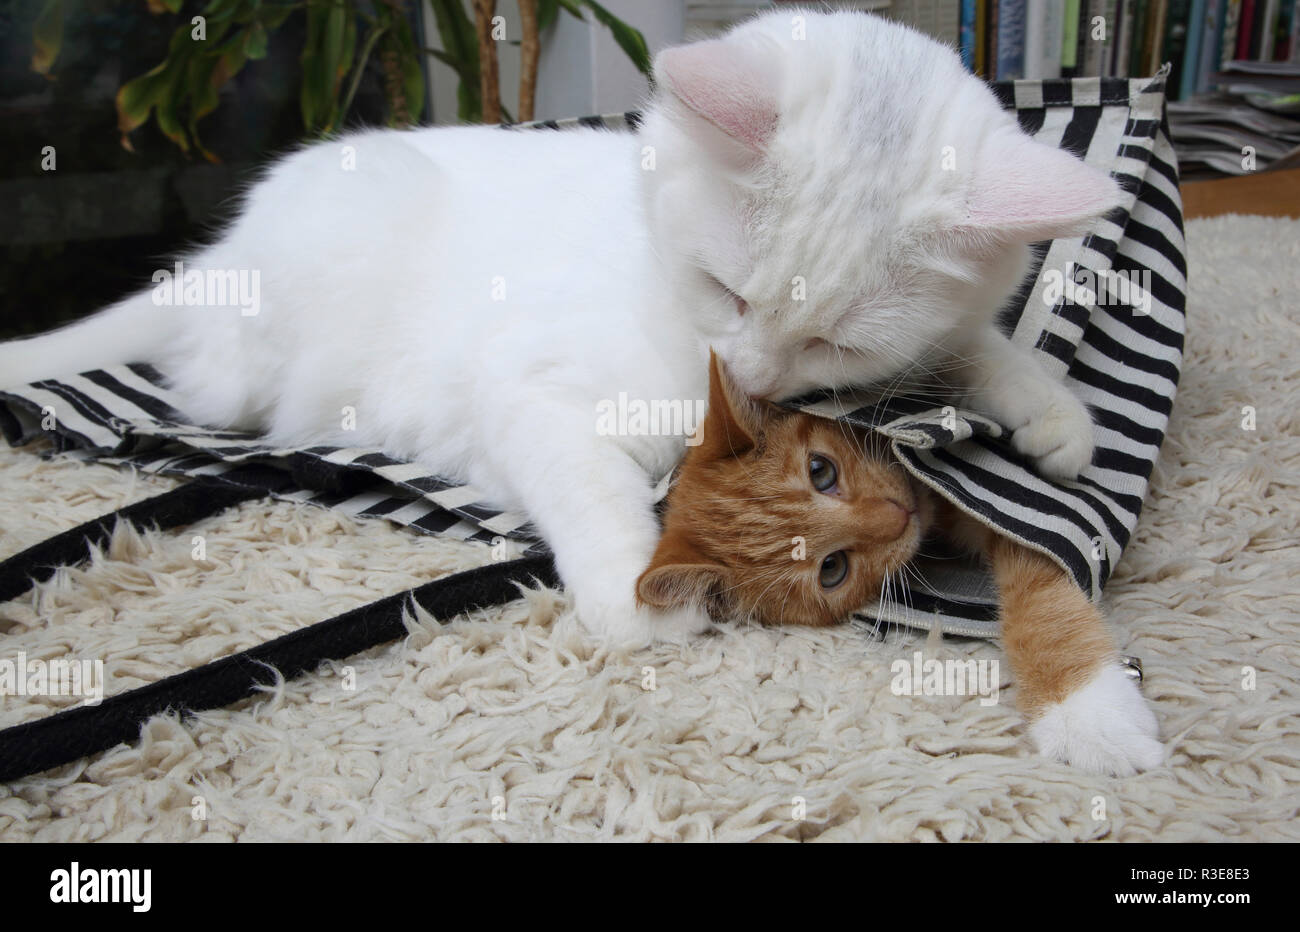 White Turkish Angora Cat Playing With A Ginger Kitten Trapping Him